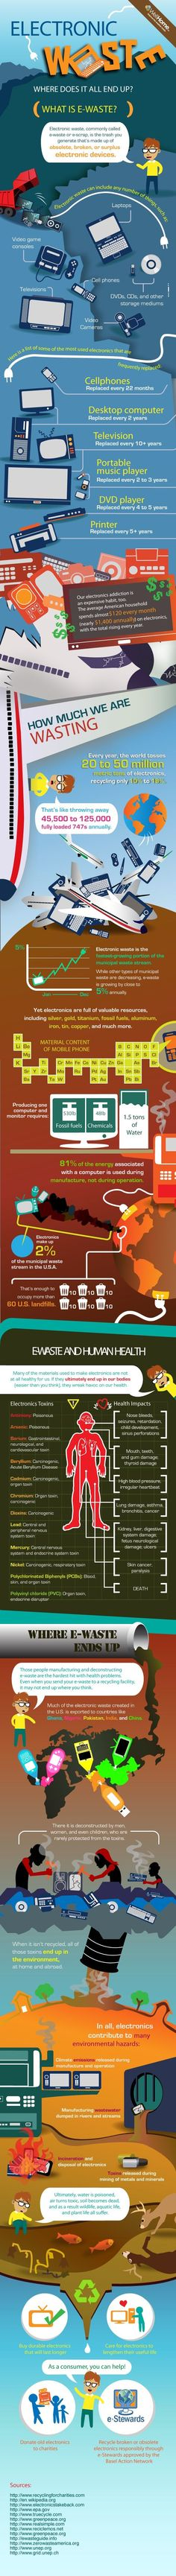 What is ewaste? This picture helps define that. #Limitewaste #technologypollution